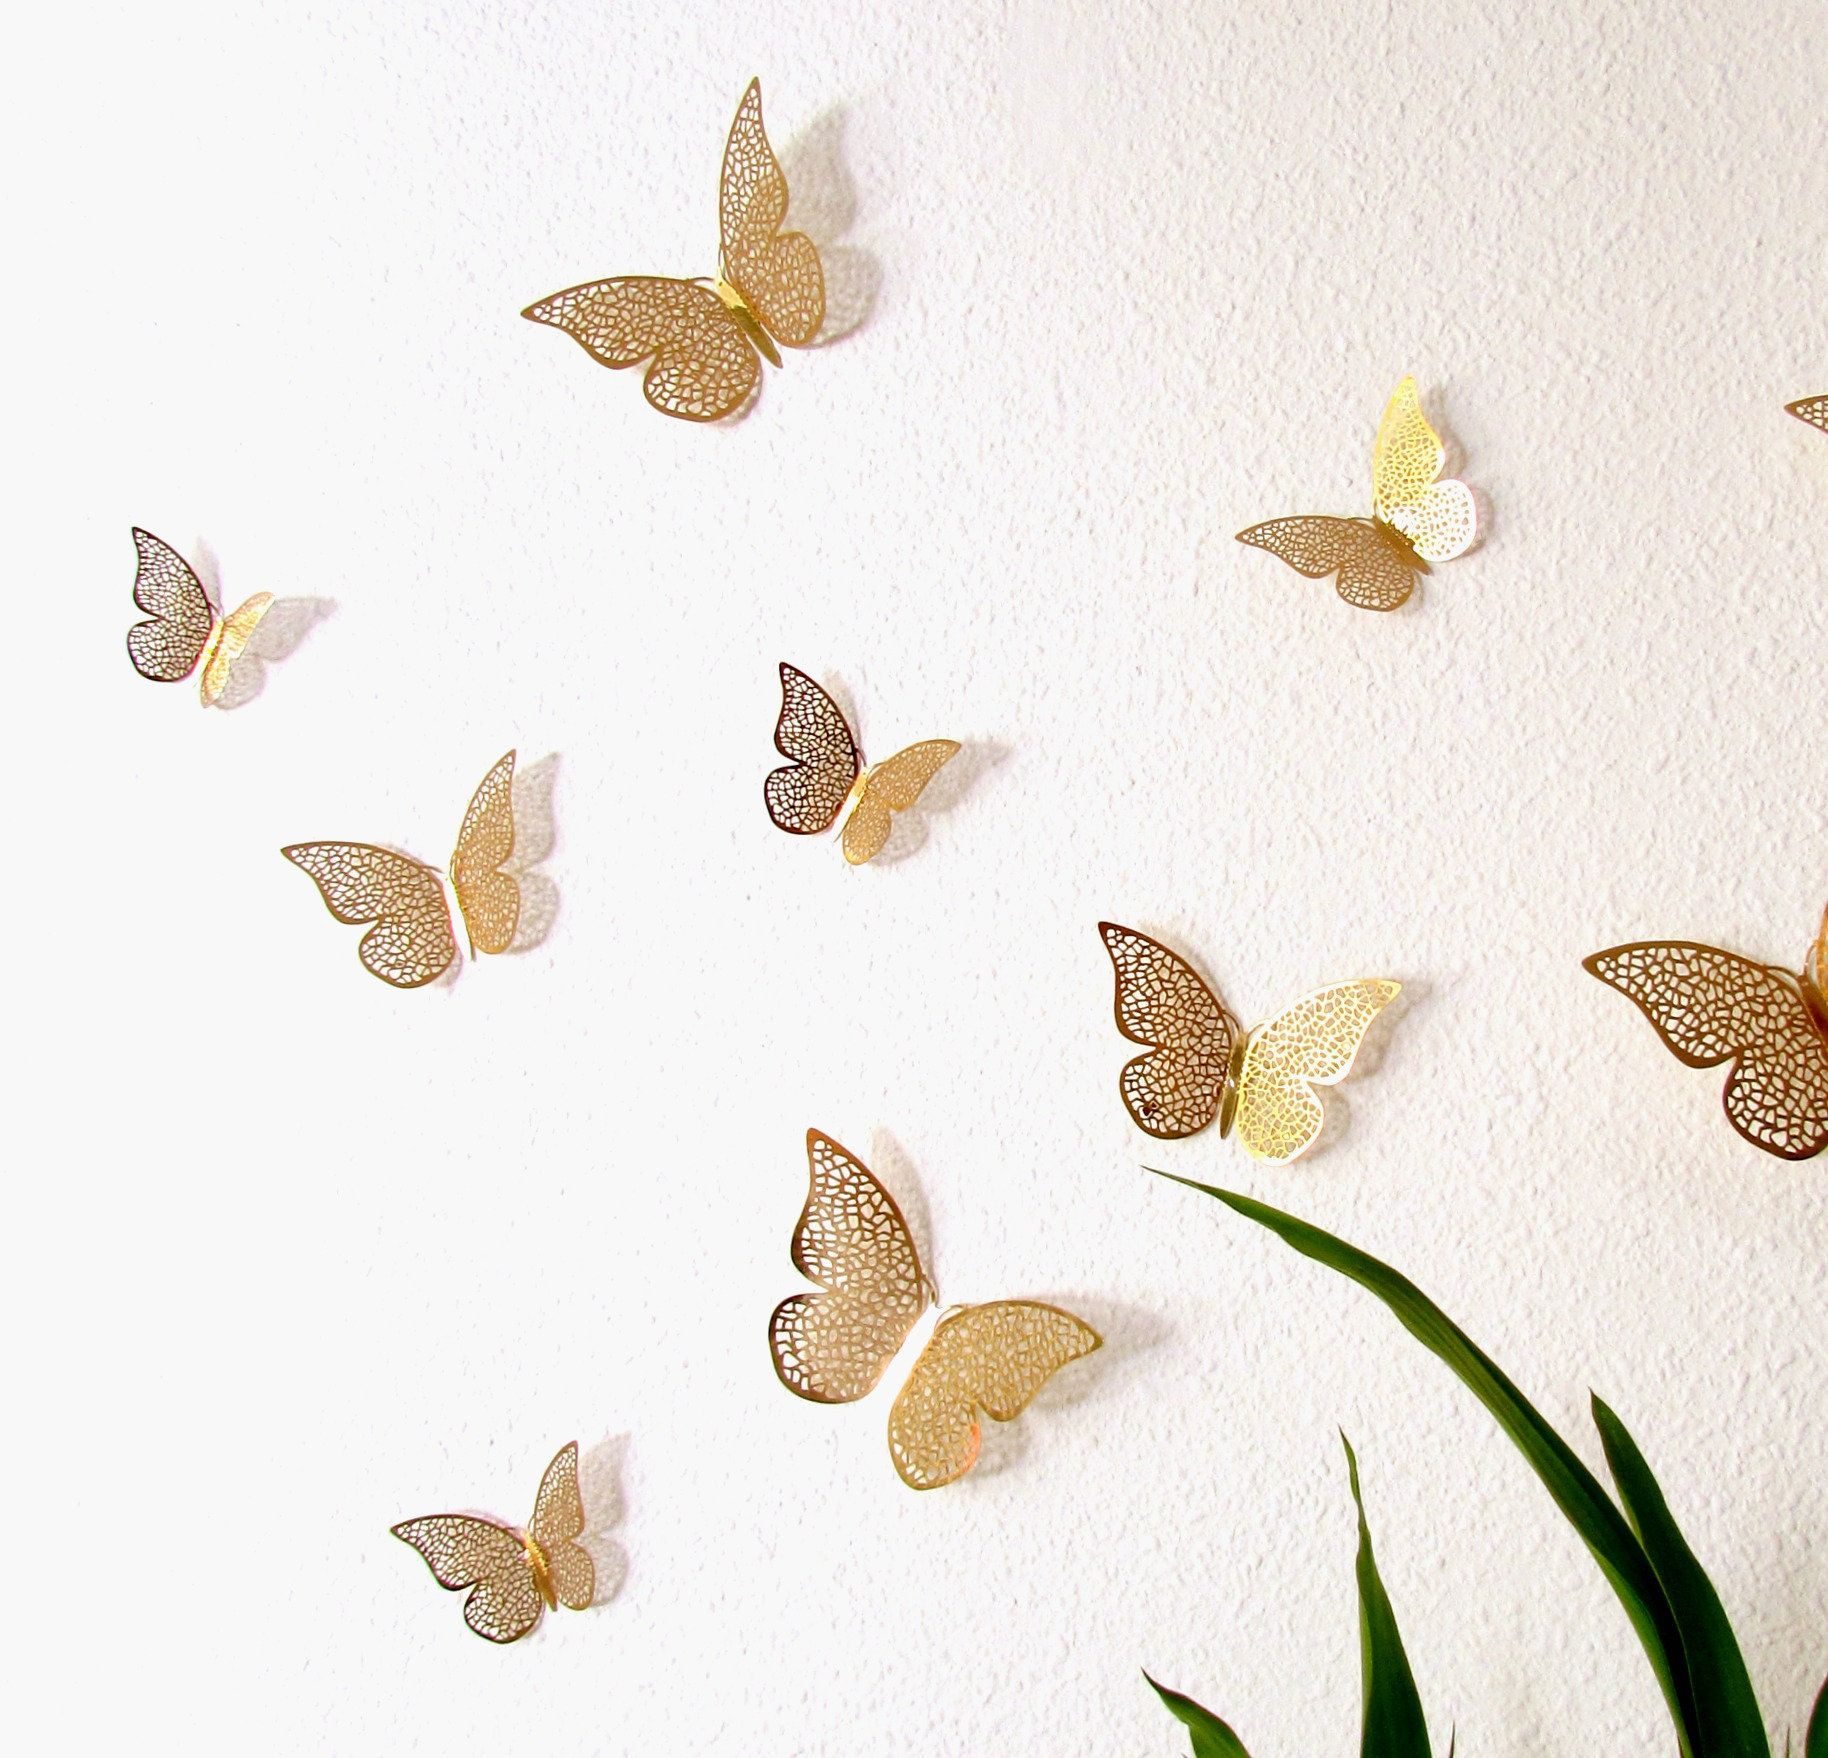 12 Gold Foil Butterflies Home Diy Wedding Decor Butterfly Nursery Wall Decor Shop Windows Golden Wall Butterflies For Crafts In 2020 Butterfly Wall Gold Wall Stickers Butterfly Wall Decor